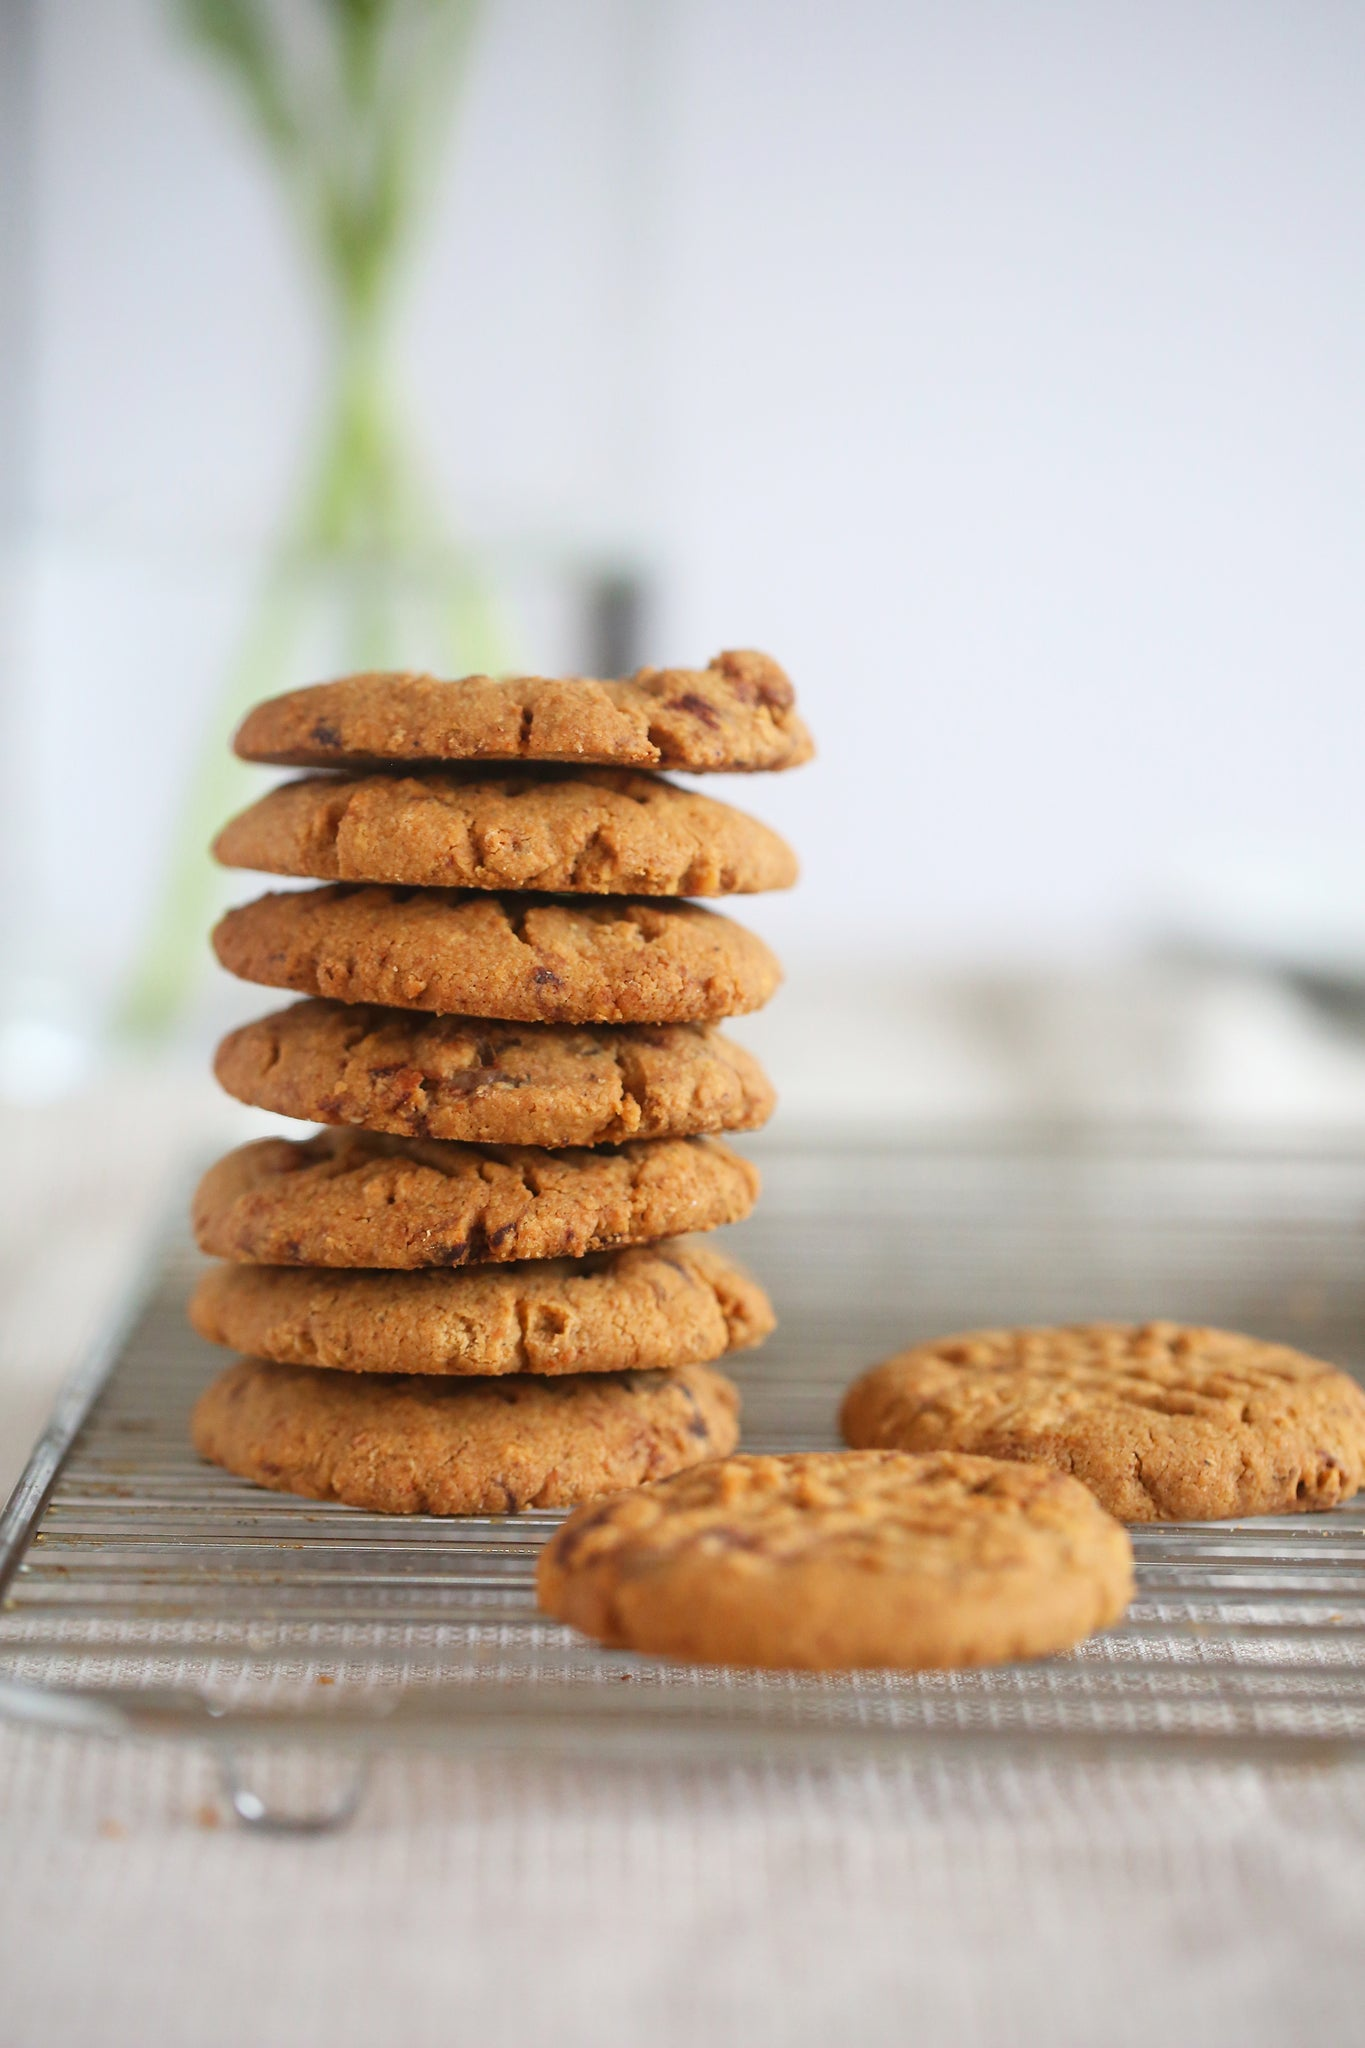 Glorious WALNUT AND CHOCOLATE CHUNK COOKIES - healthy, vegan, dairy free, low sugar, no refined sugar, wheat free, egg free, one bowl, begoodorganics